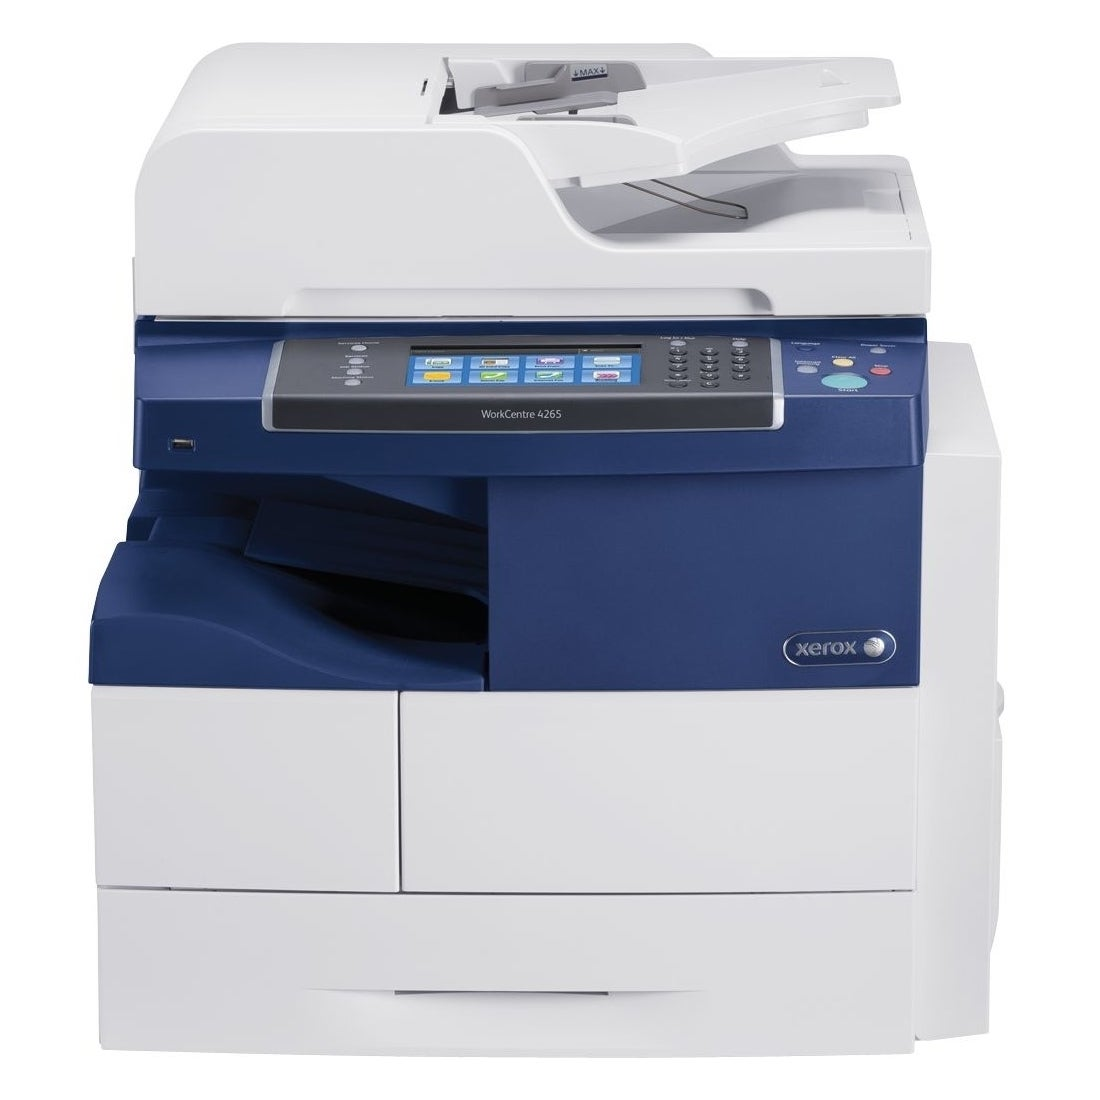 Xerox WorkCentre 4265/X Monochrome Multifunction (All-in-One) Printer